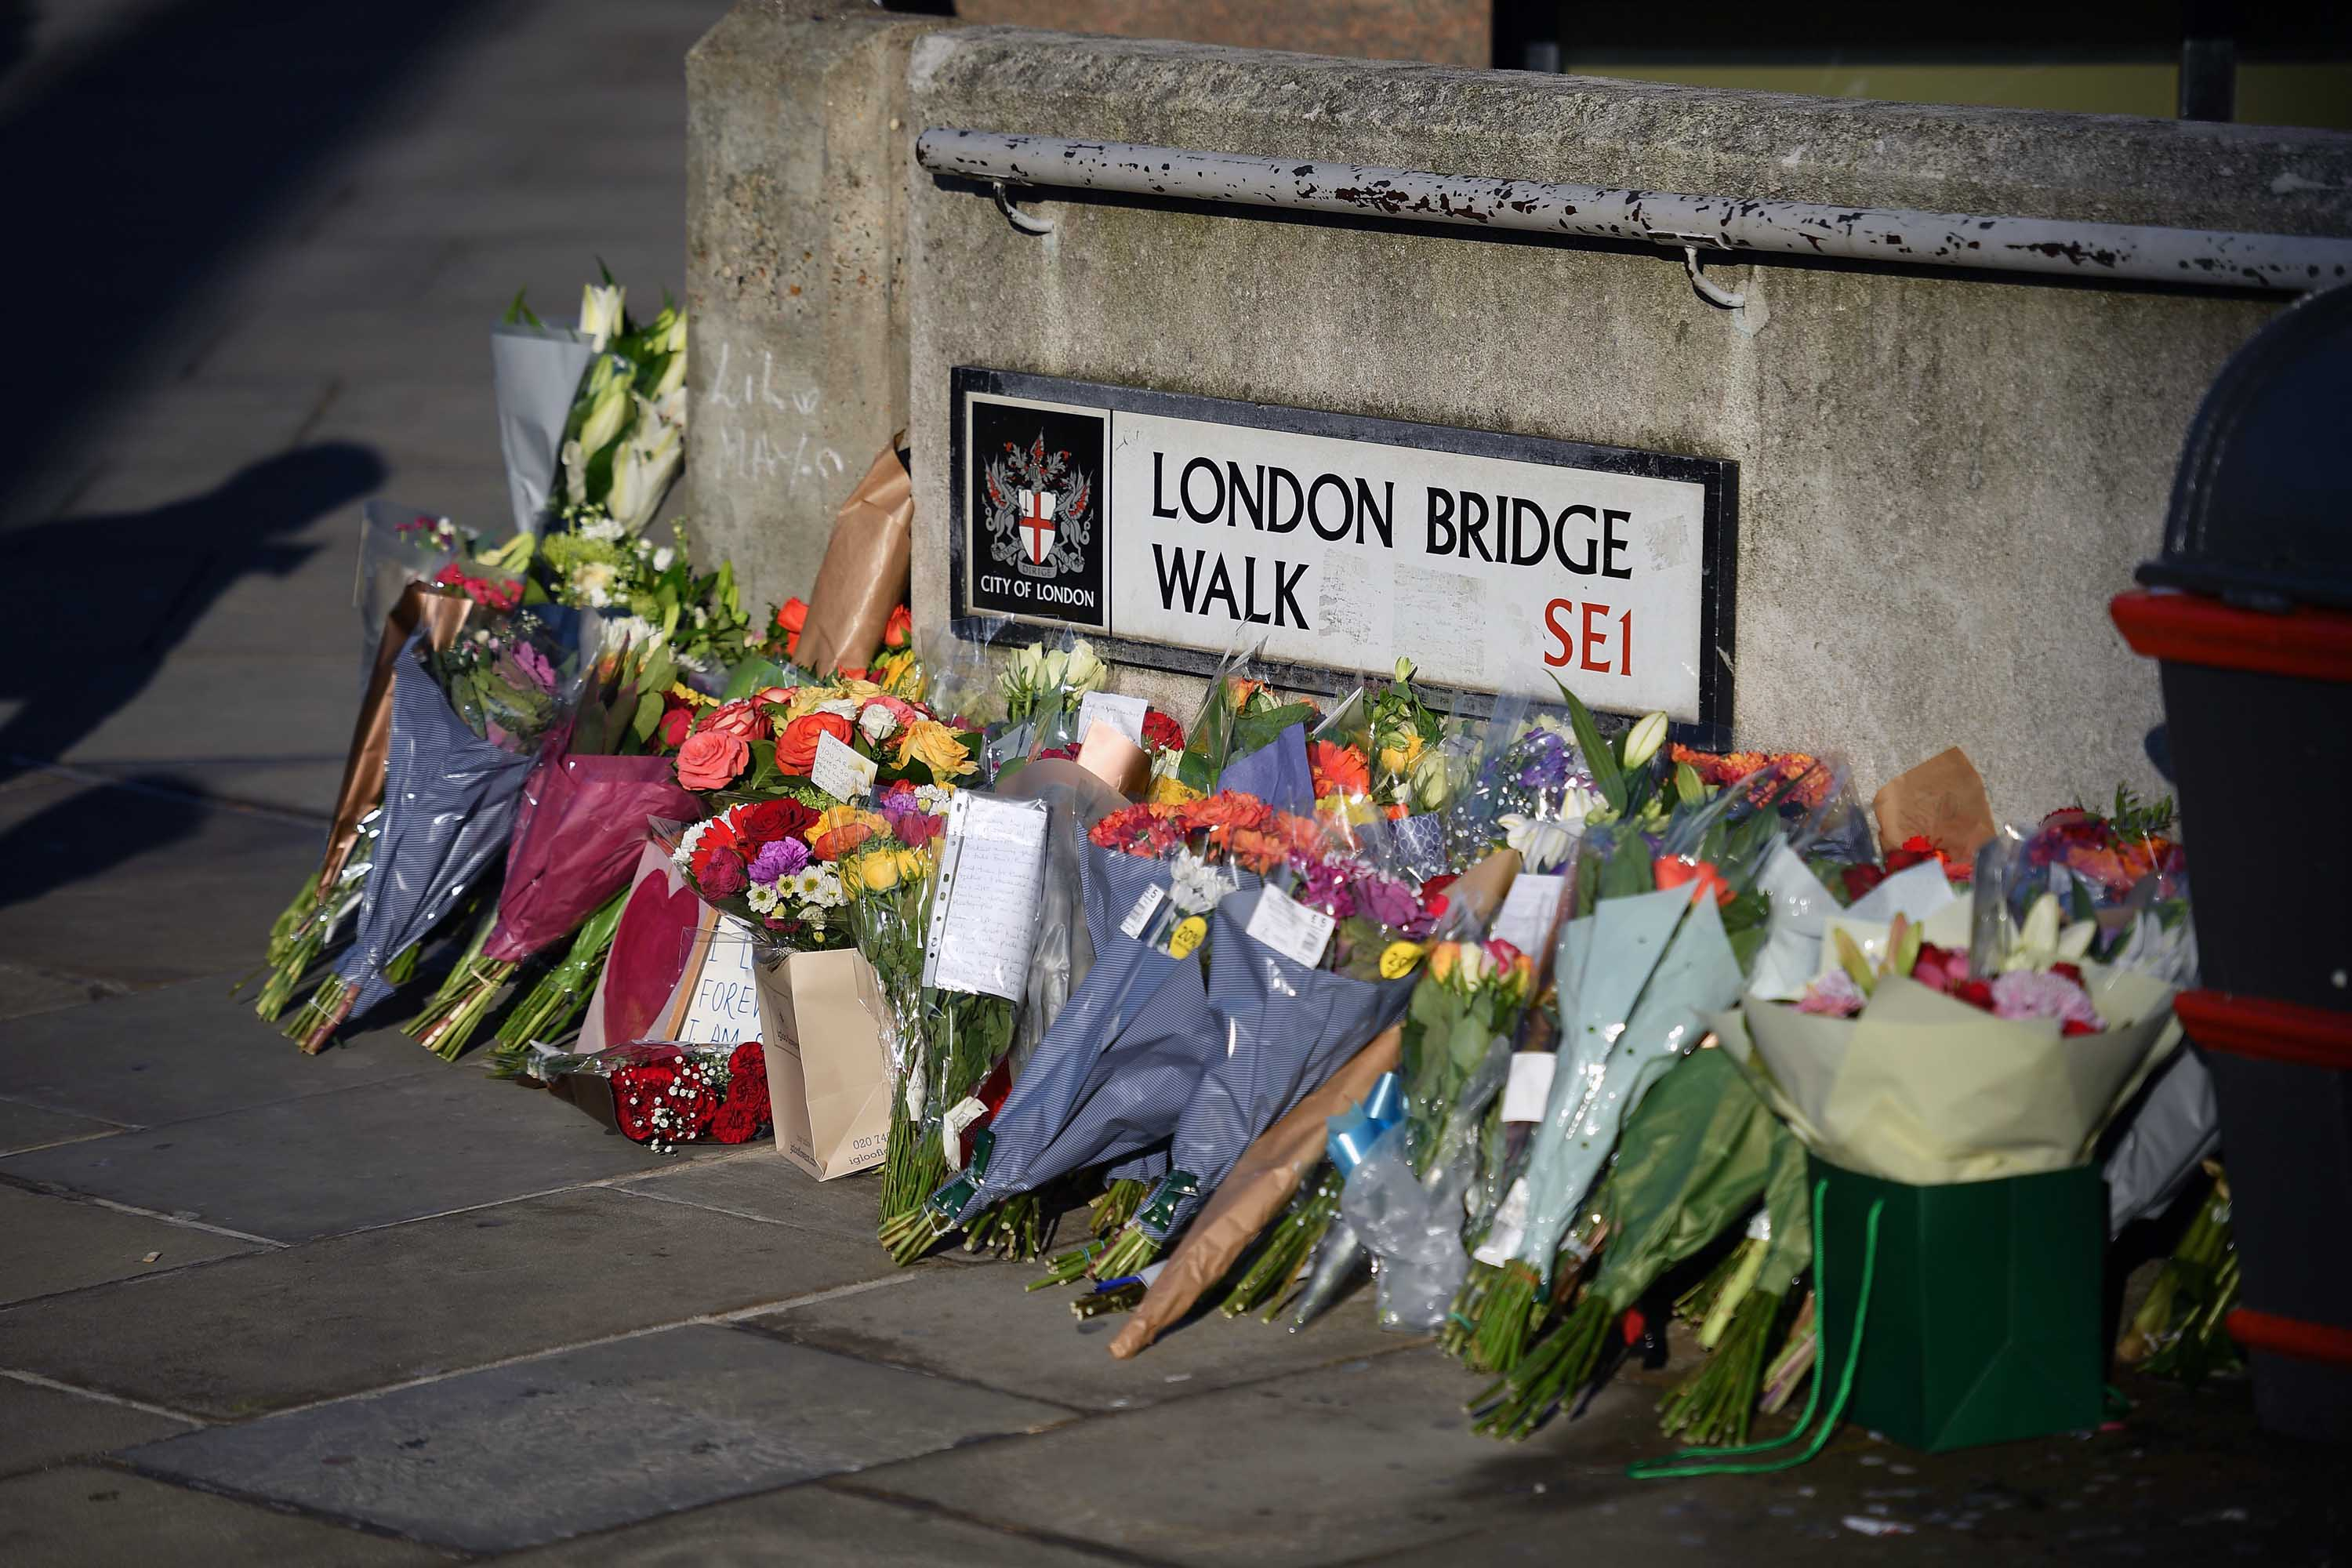 Bouquets of flowers are placed in tribute to the victims of last week's terrorist attack at London Bridge.